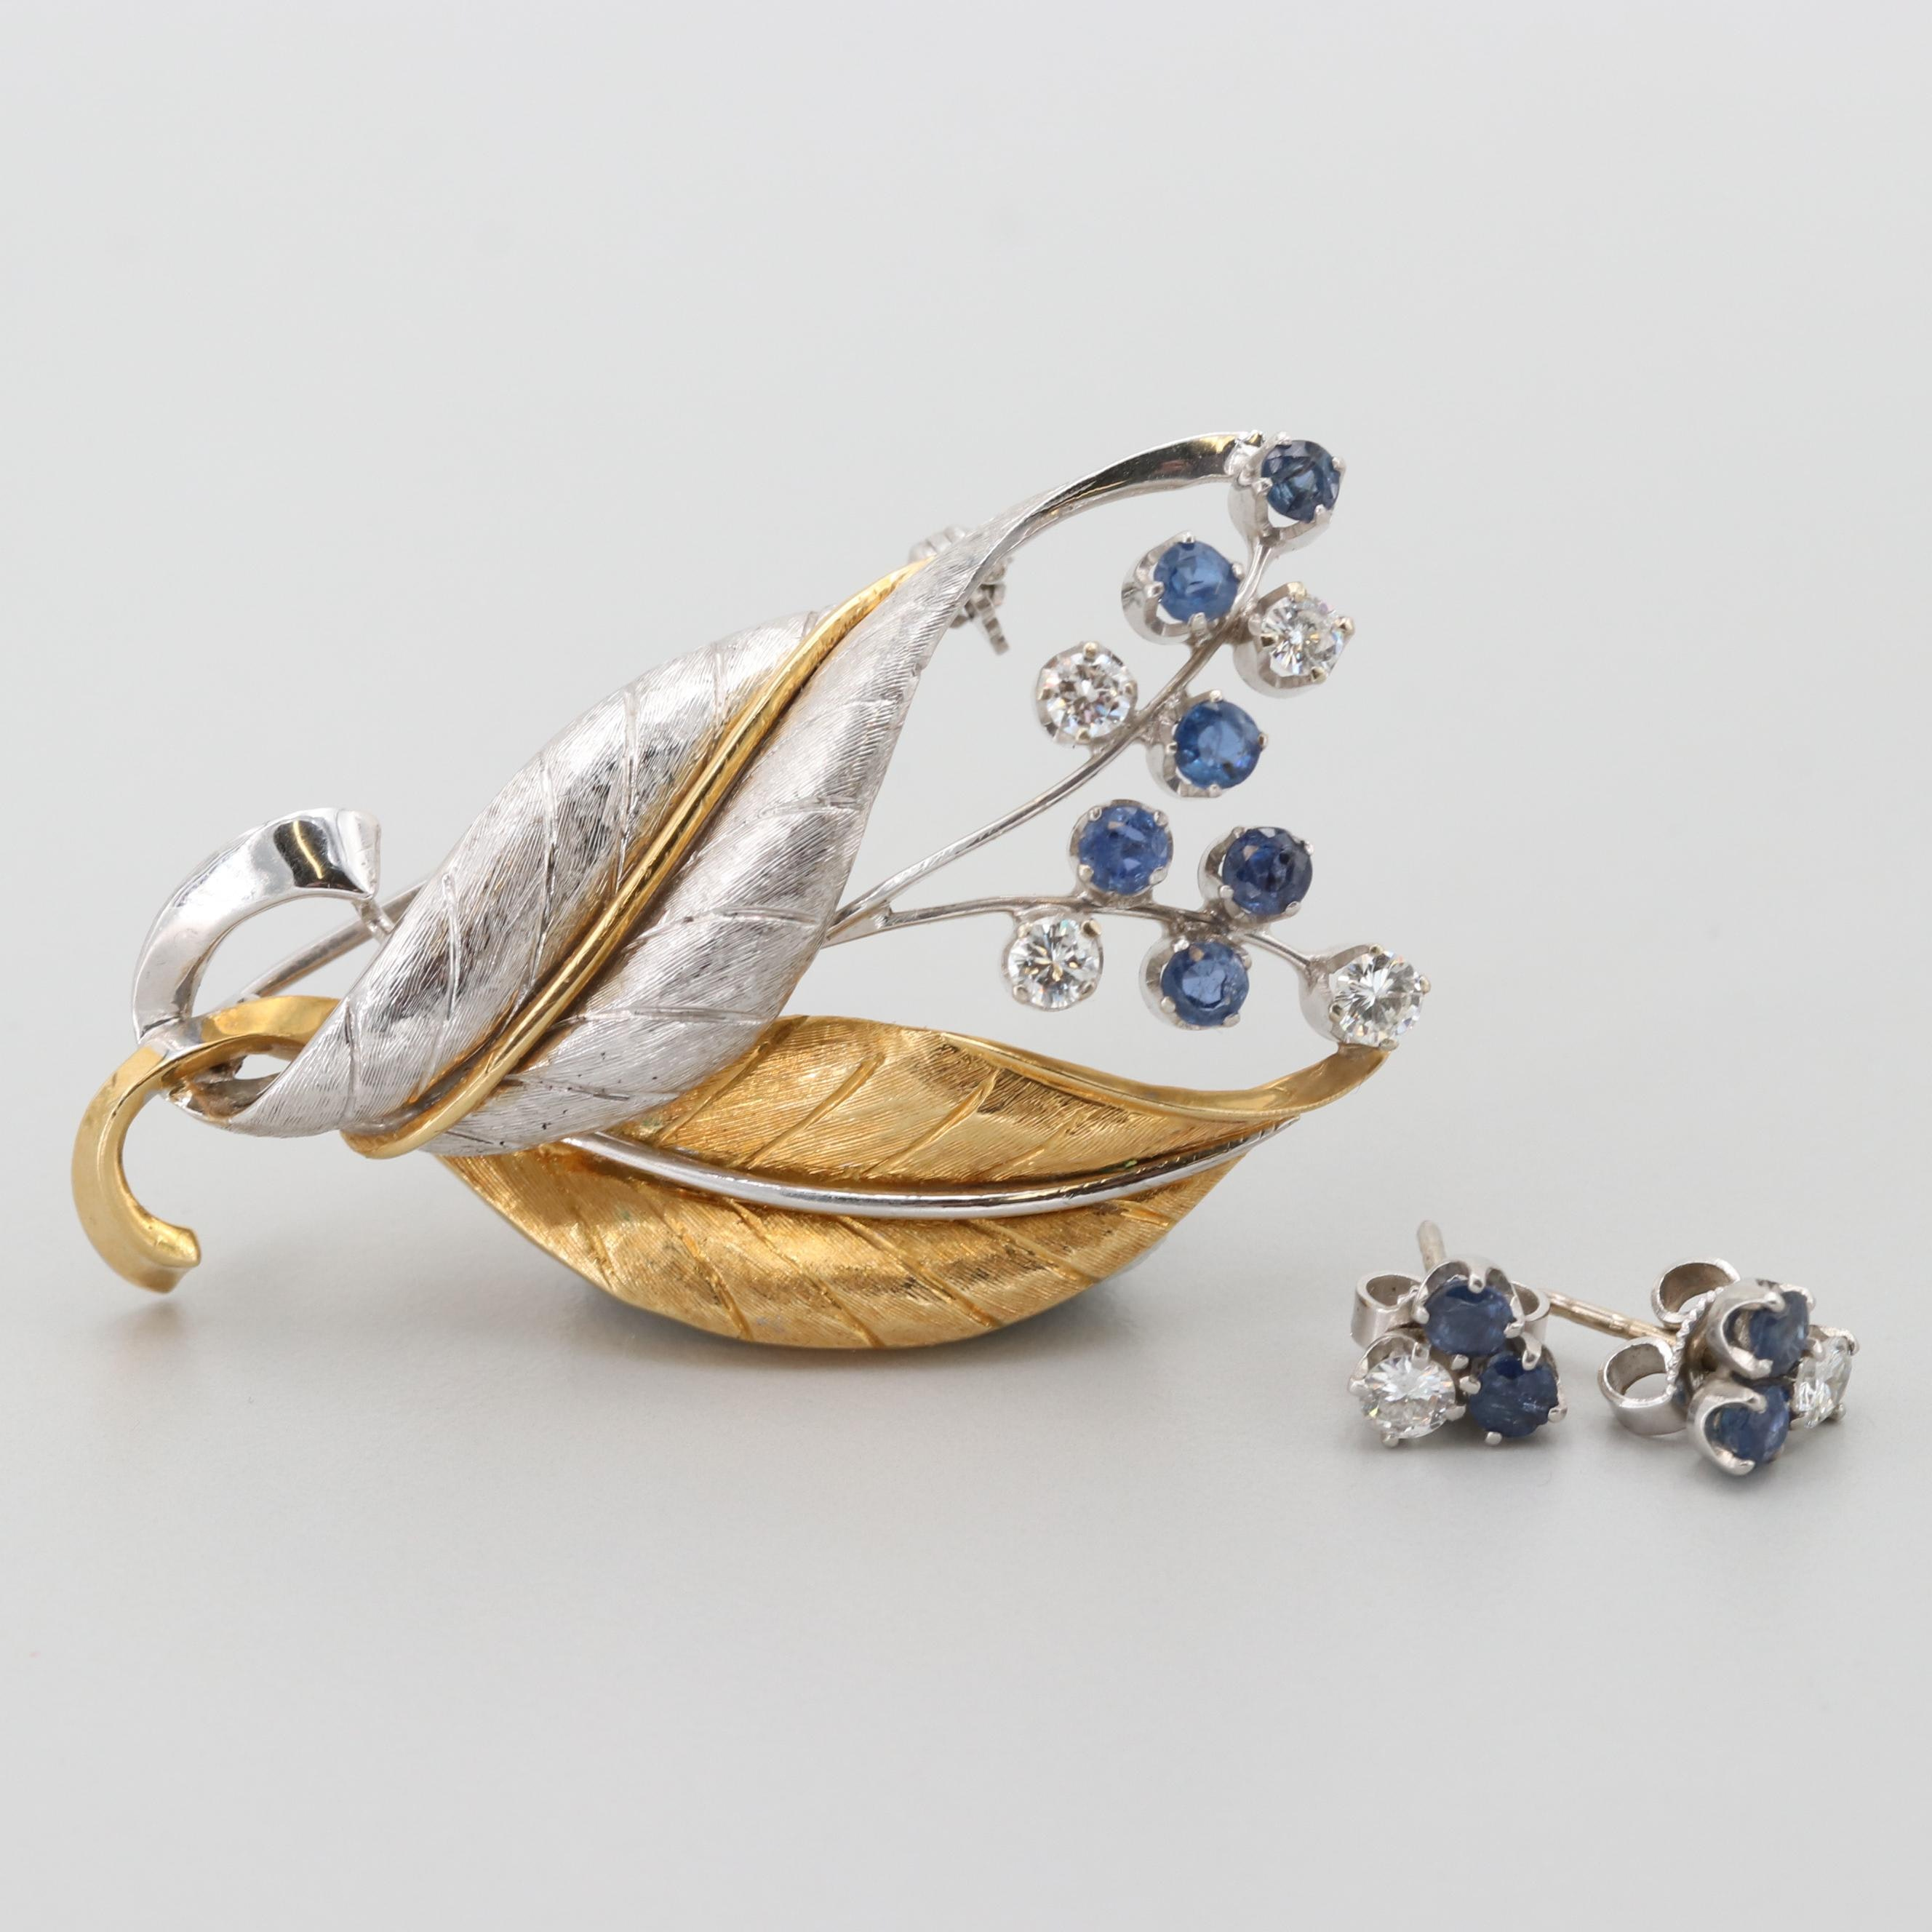 18K Gold Diamond and Sapphire Brooch with Matching Platinum Stud Earrings